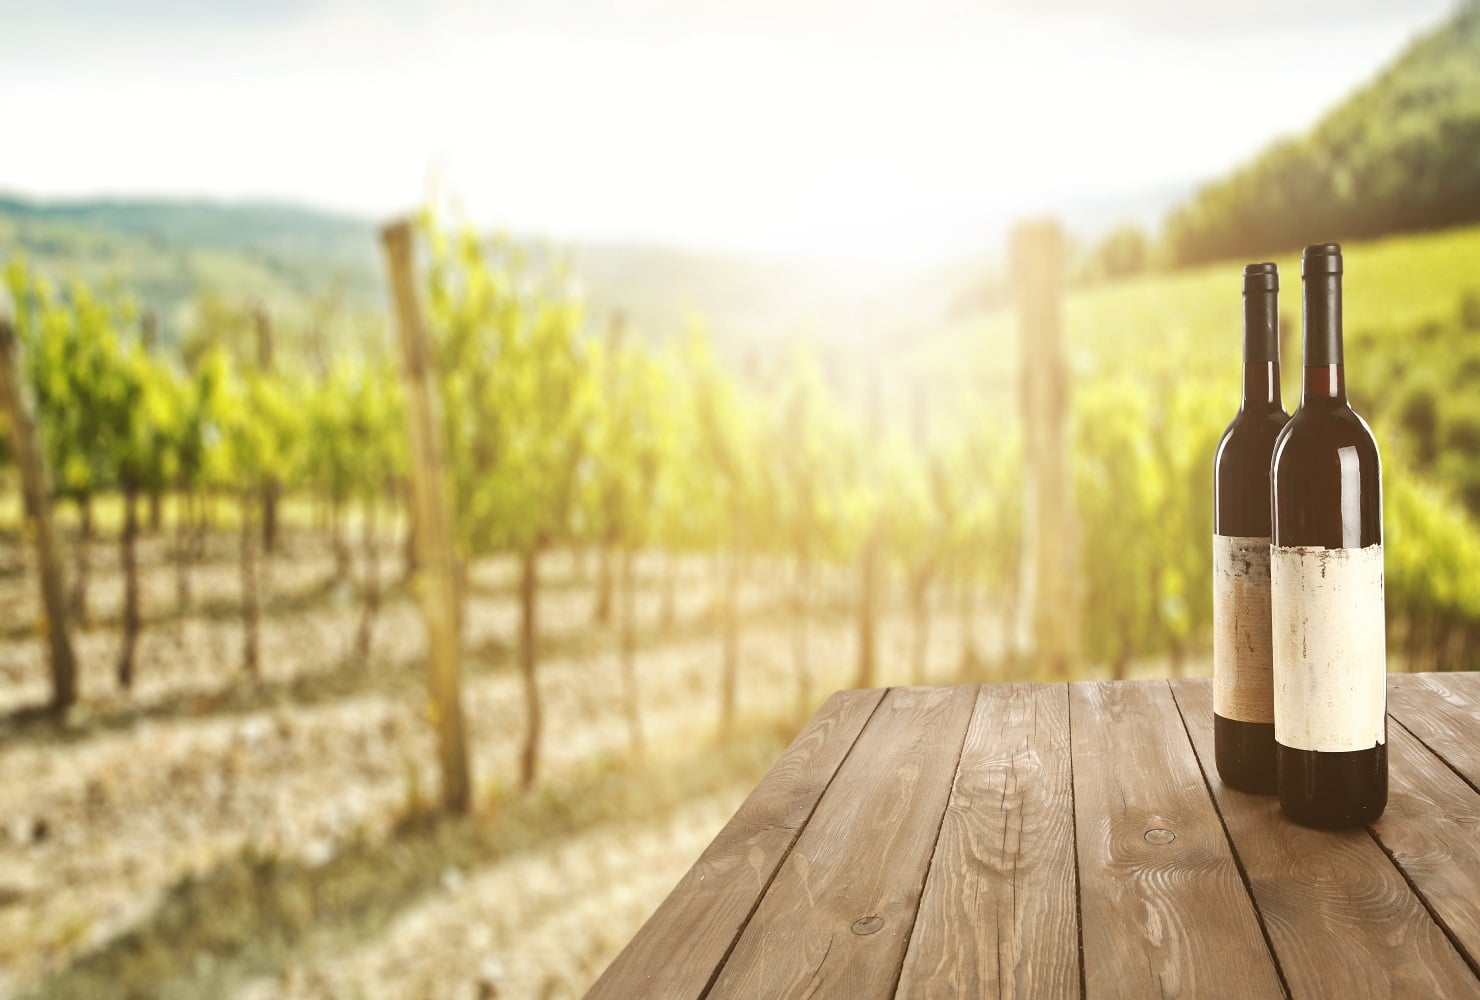 Slow and steady wins the race for SA wine industry's 2020/21 grape season